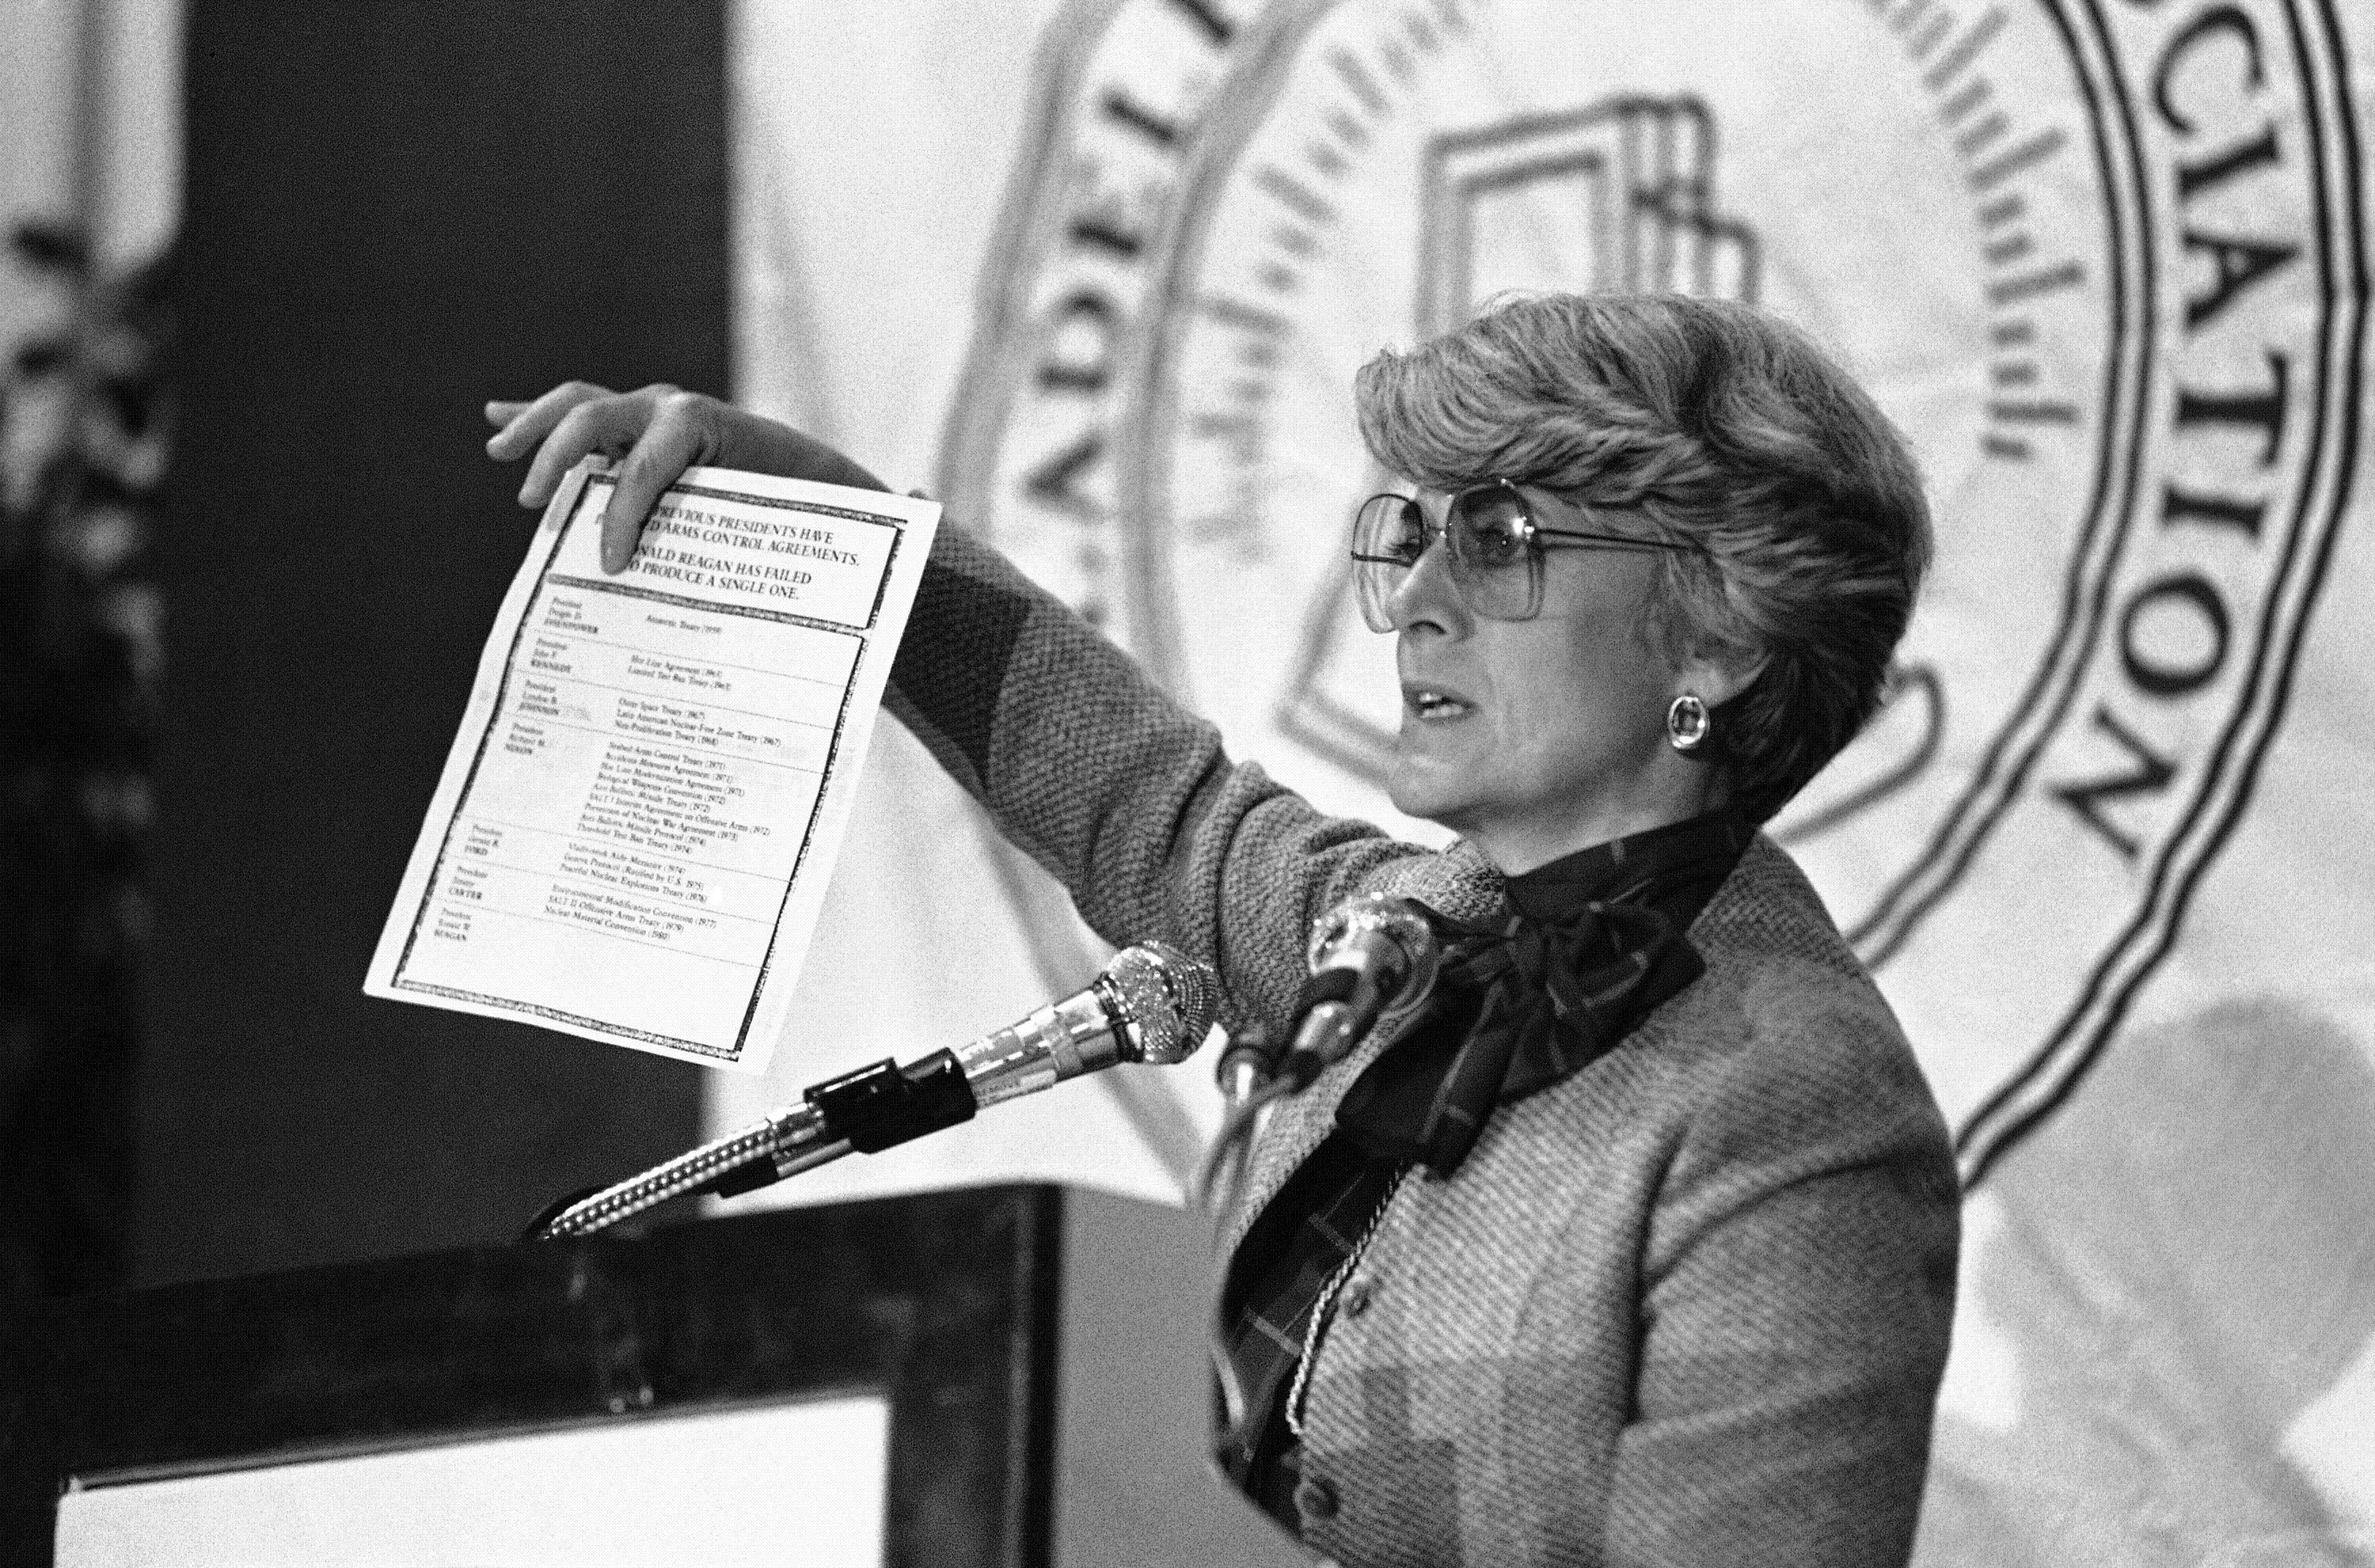 In this Tuesday, Sept. 18, 1984 file picture, Democratic vice presidential candidate Geraldine Ferraro holds up a document claiming President Ronald Reagan has failed to support a single arms control agreement which six previous U.S. presidents have. Ms. Ferraro, addressing the Young Lawyers, Division of the Philadelphia Bar Association said Reagan�s policies have led to an �arms control gridlock� that does not reduce the risk of nuclear war. The first woman to run for U.S. vice president on a major party ticket has died. Geraldine Ferraro was 75. A family friend said Ferraro, who was diagnosed with blood cancer in 1998, died Saturday, March 26, 2011 at Massachusetts General Hospital.